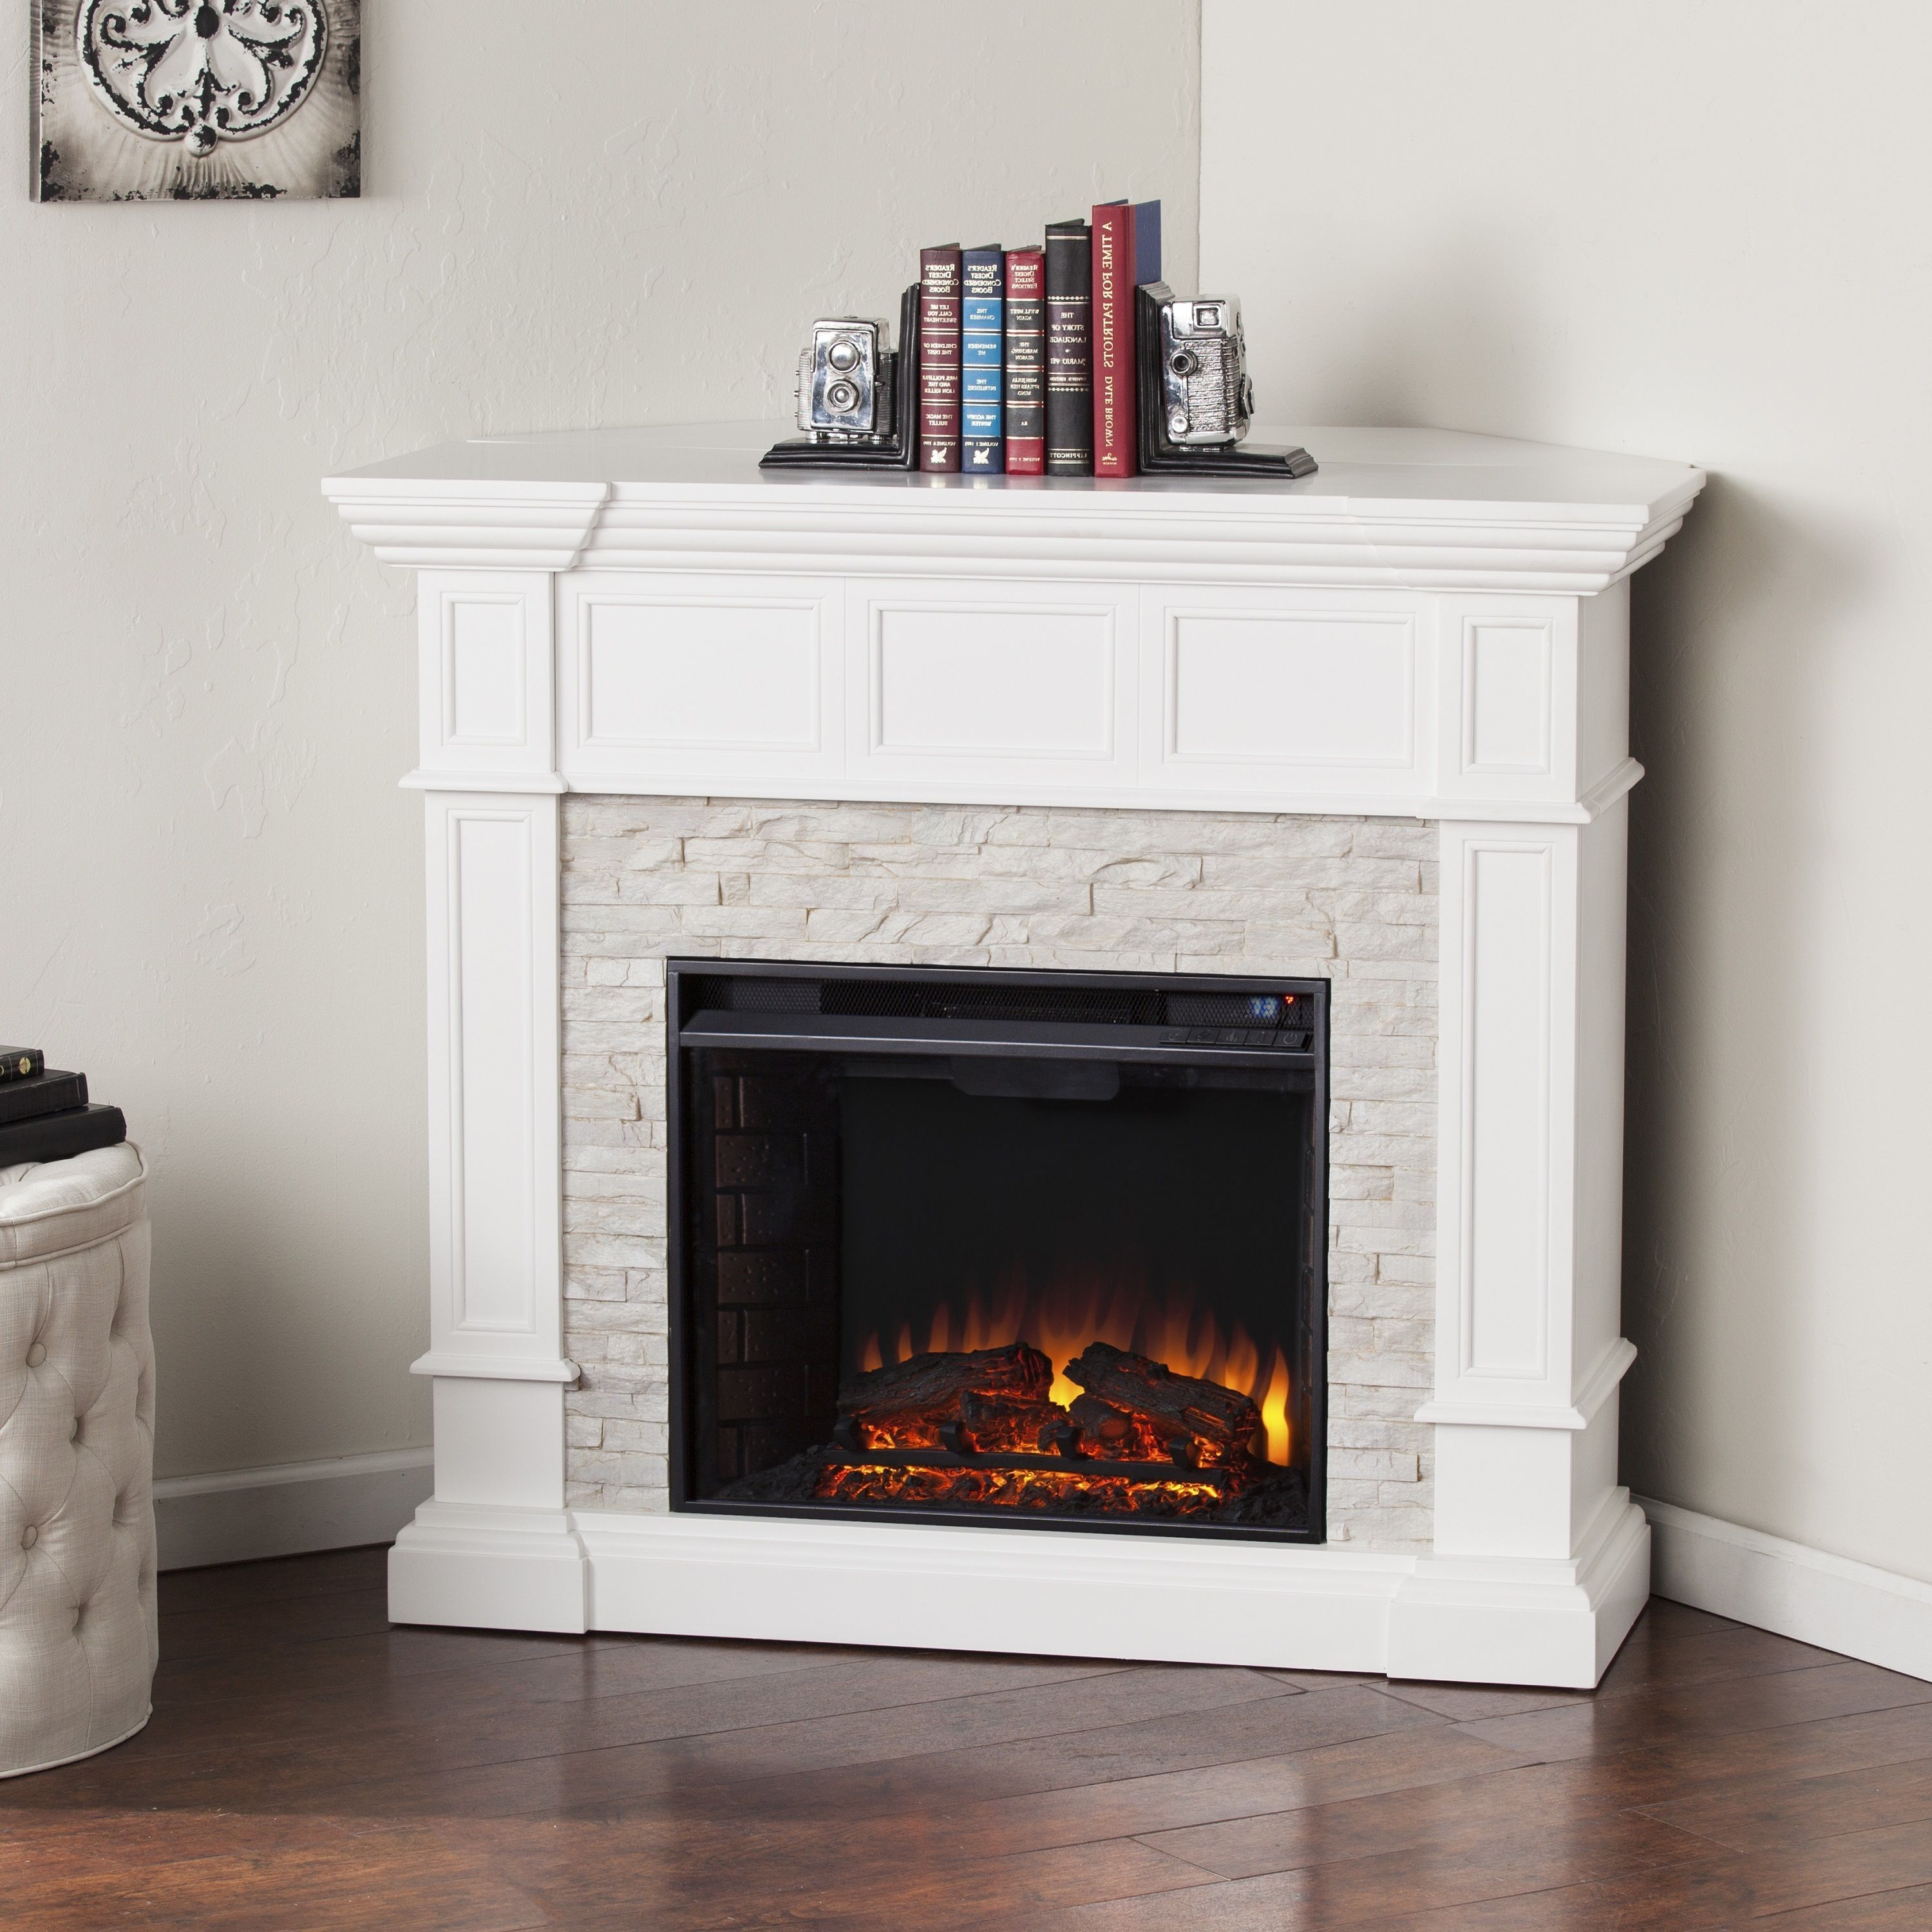 Natural Gas Corner Fireplace Fresh 33 Modern and Traditional Corner Fireplace Ideas Remodel